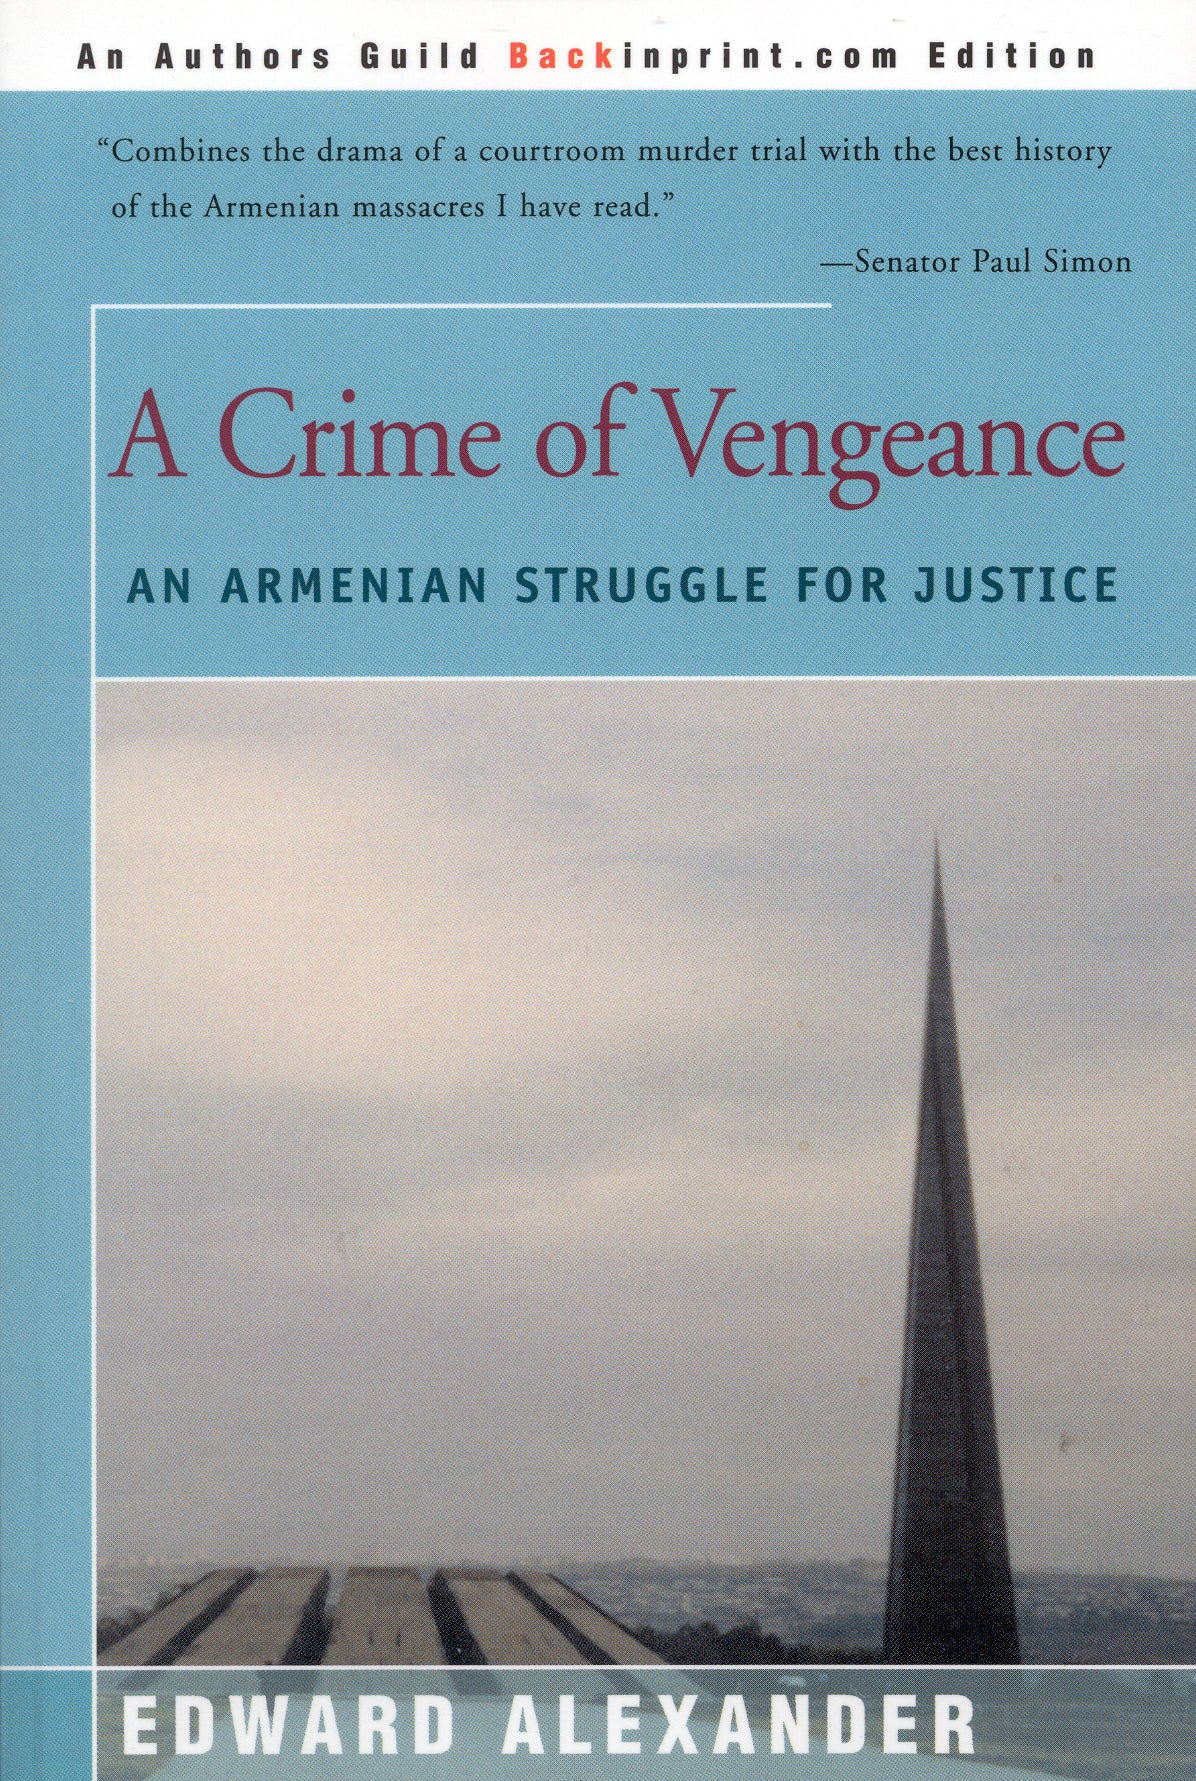 A CRIME OF VENGEANCE: An Armenian Struggle for Justice